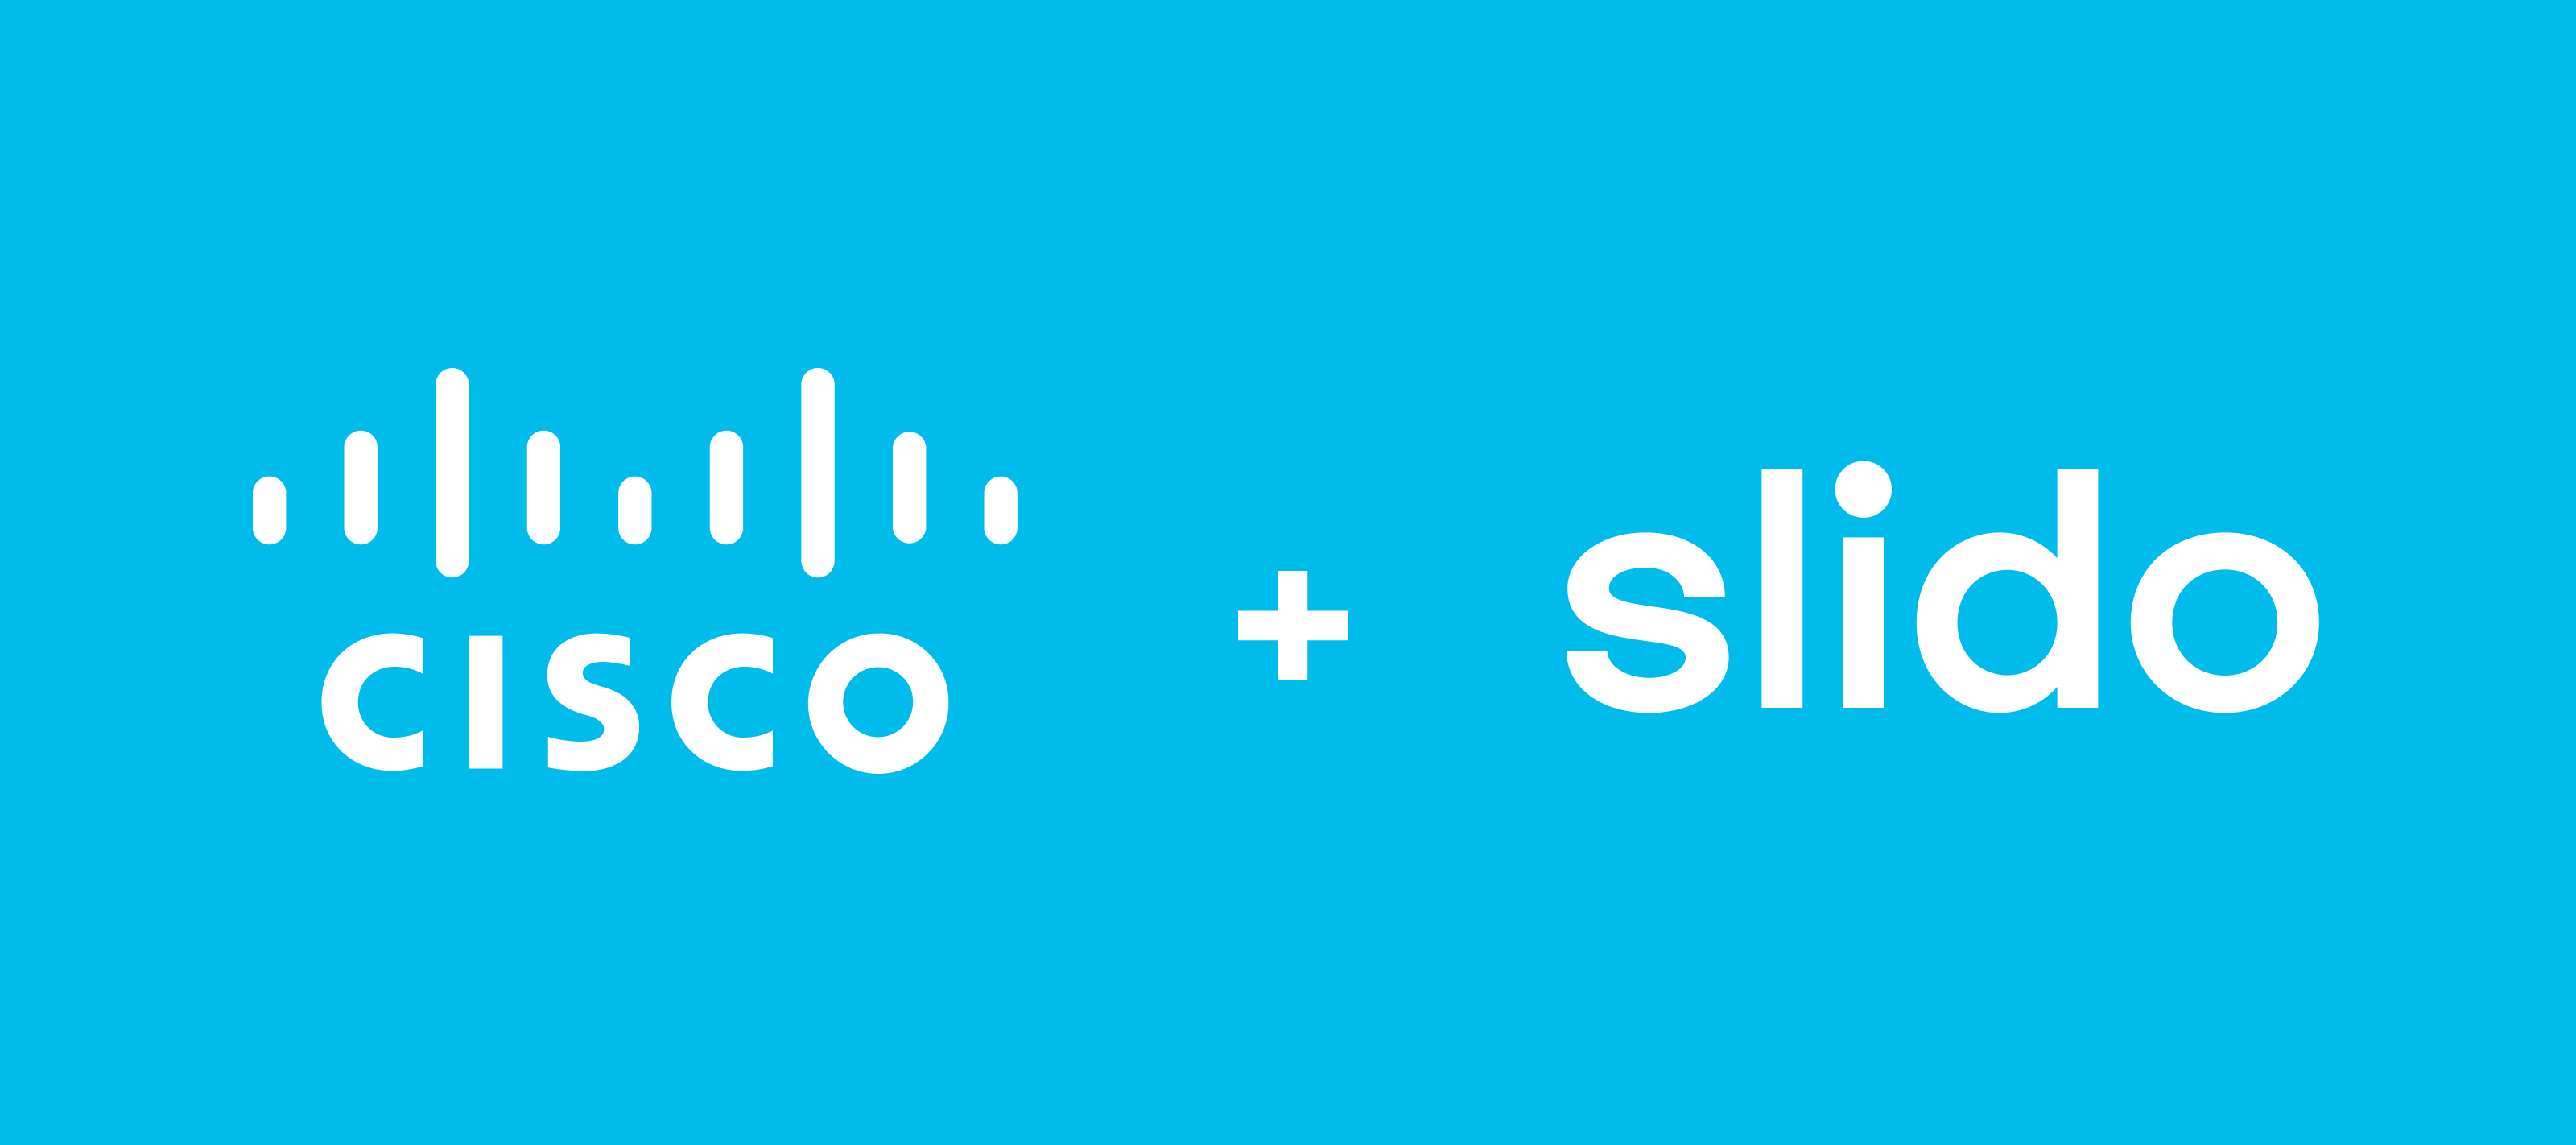 We're excited to share the news about Cisco's intent to acquire Slido!